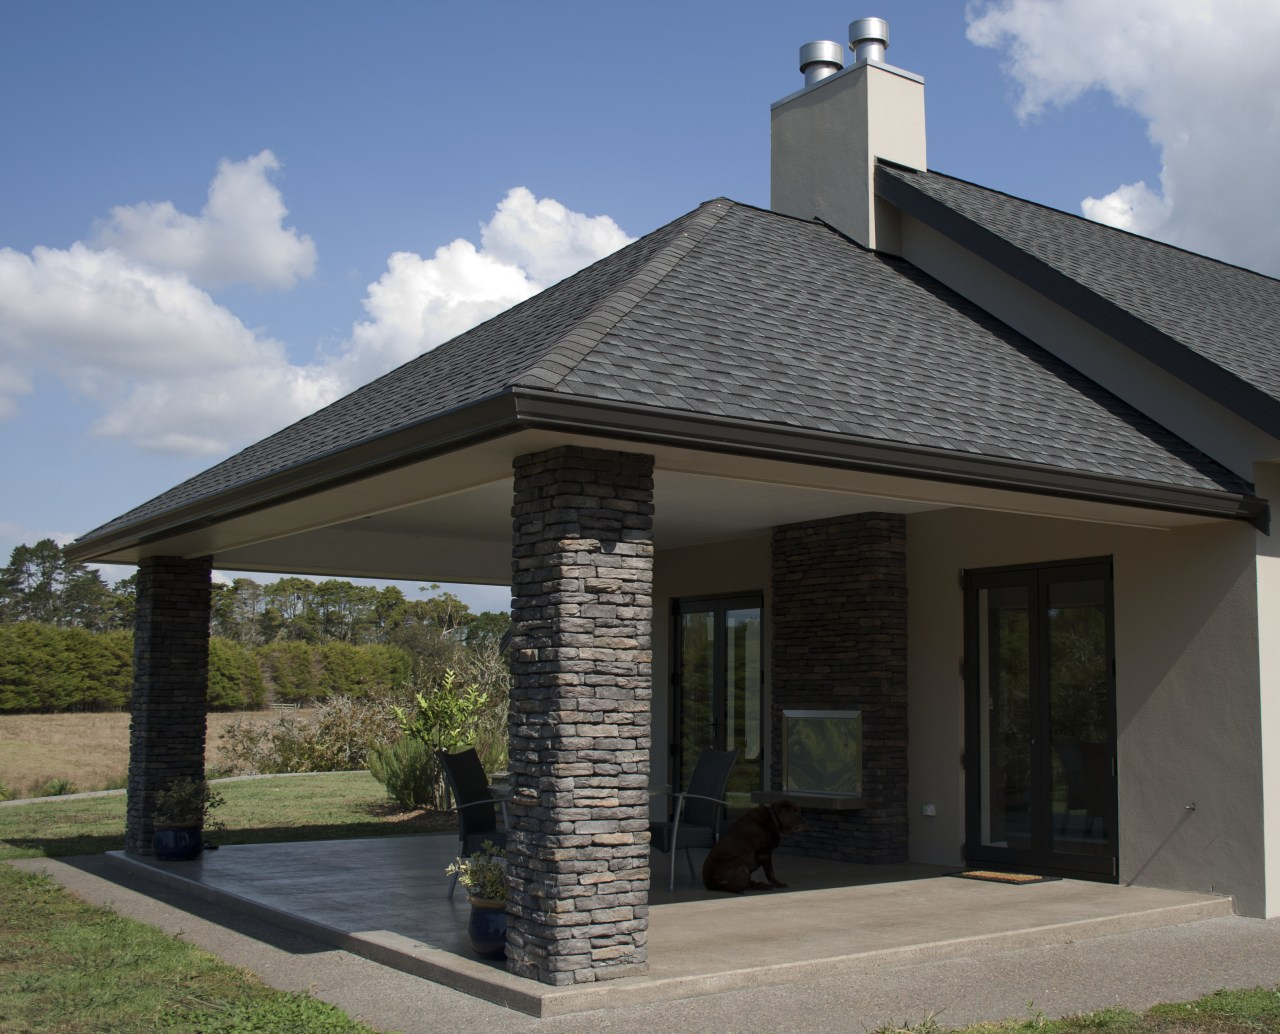 Ledgestone by Stutex Stone facade, home, house, outdoor structure, real estate, roof, siding, gray, black